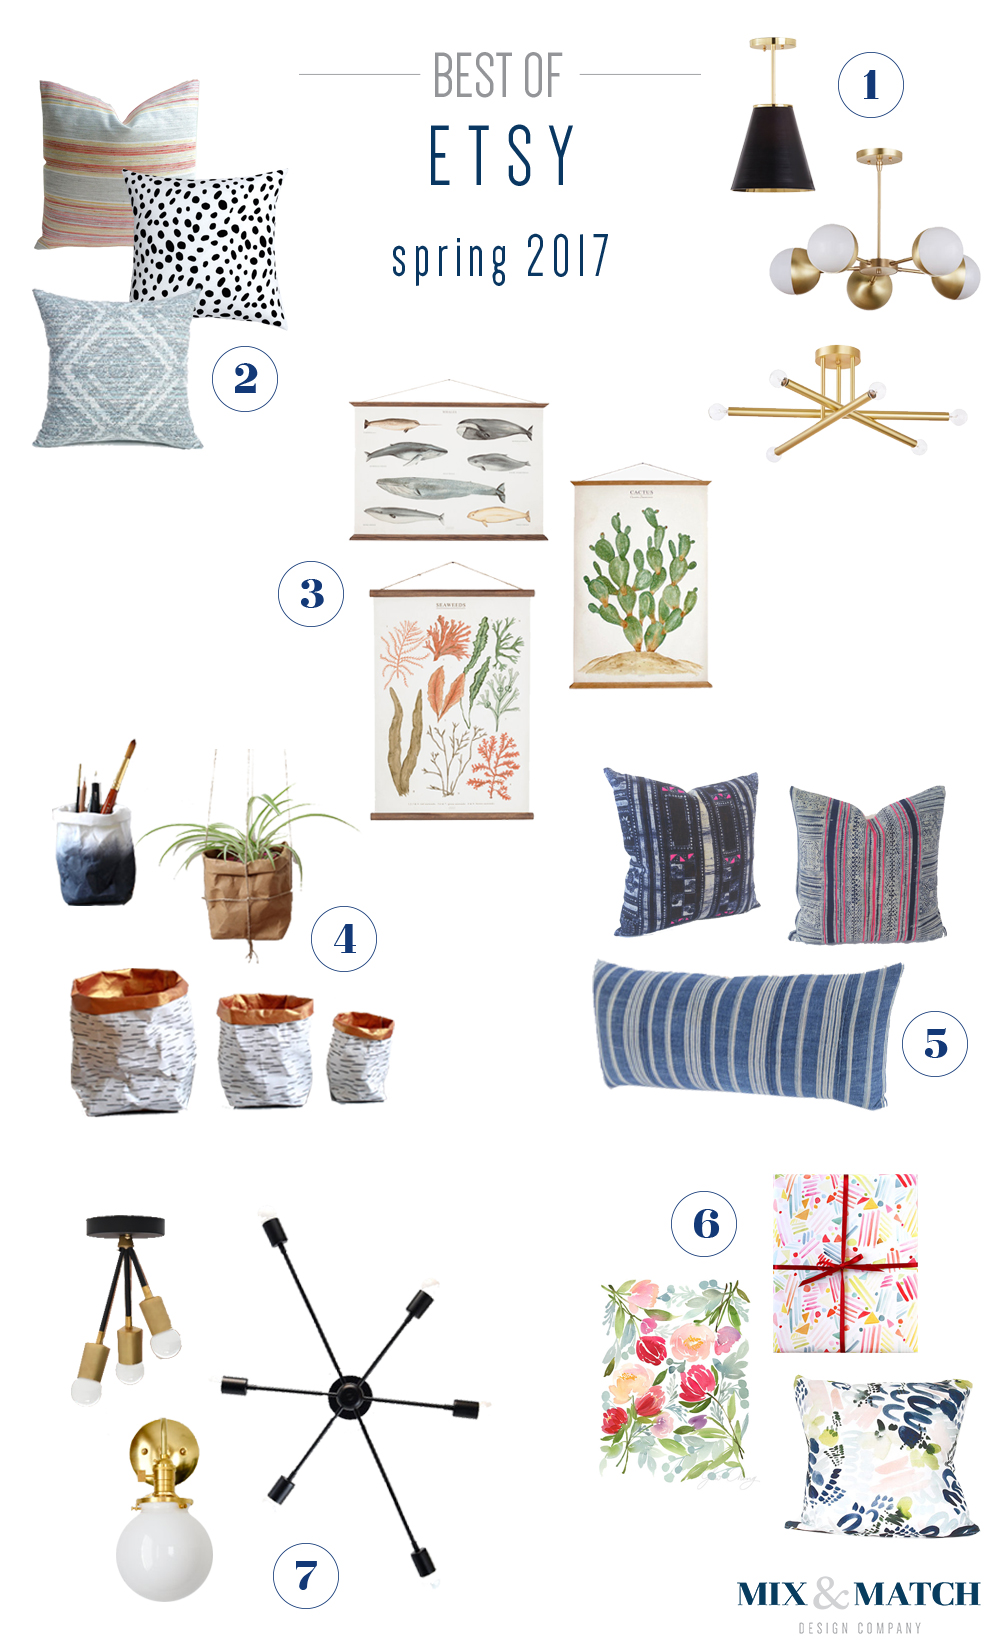 Mix & Match Design Company's favorite Etsy shops for pillows, lighting, art and a touch of home decor.